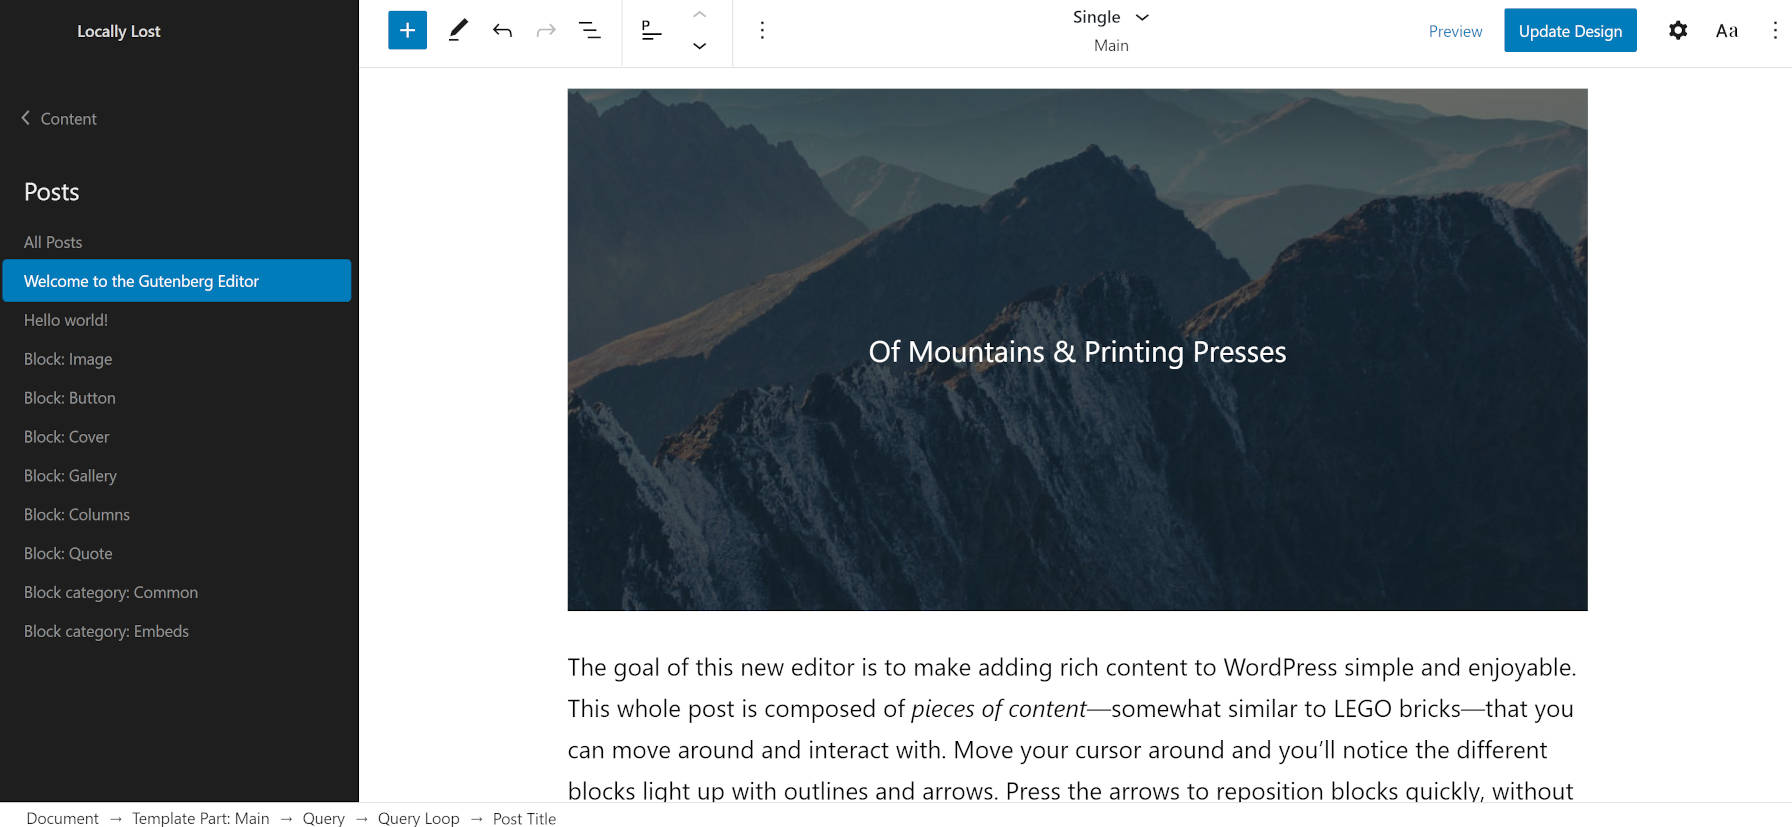 Single post view in the site editor of the Armando WordPress theme.